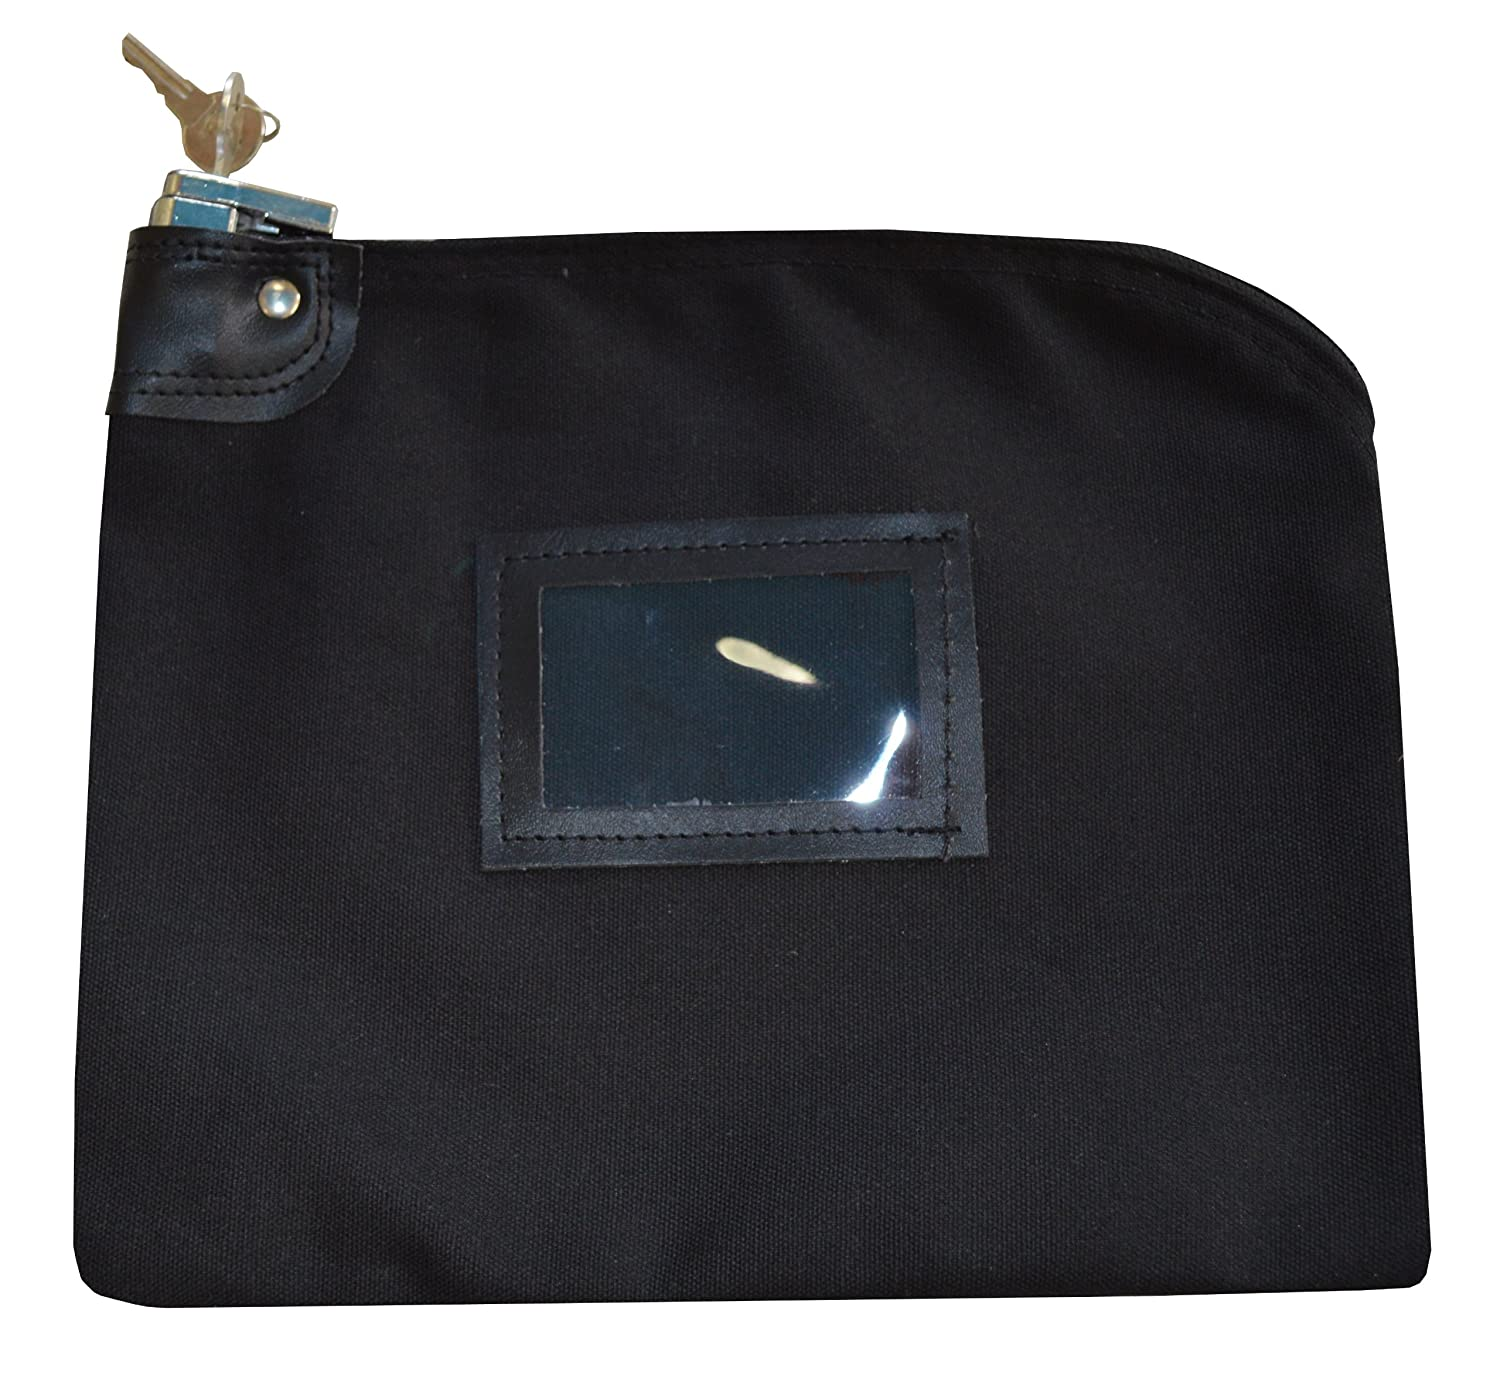 Locking Bank Bag Canvas Keyed Security (Black) Cardinal Bag Supplies 76161229